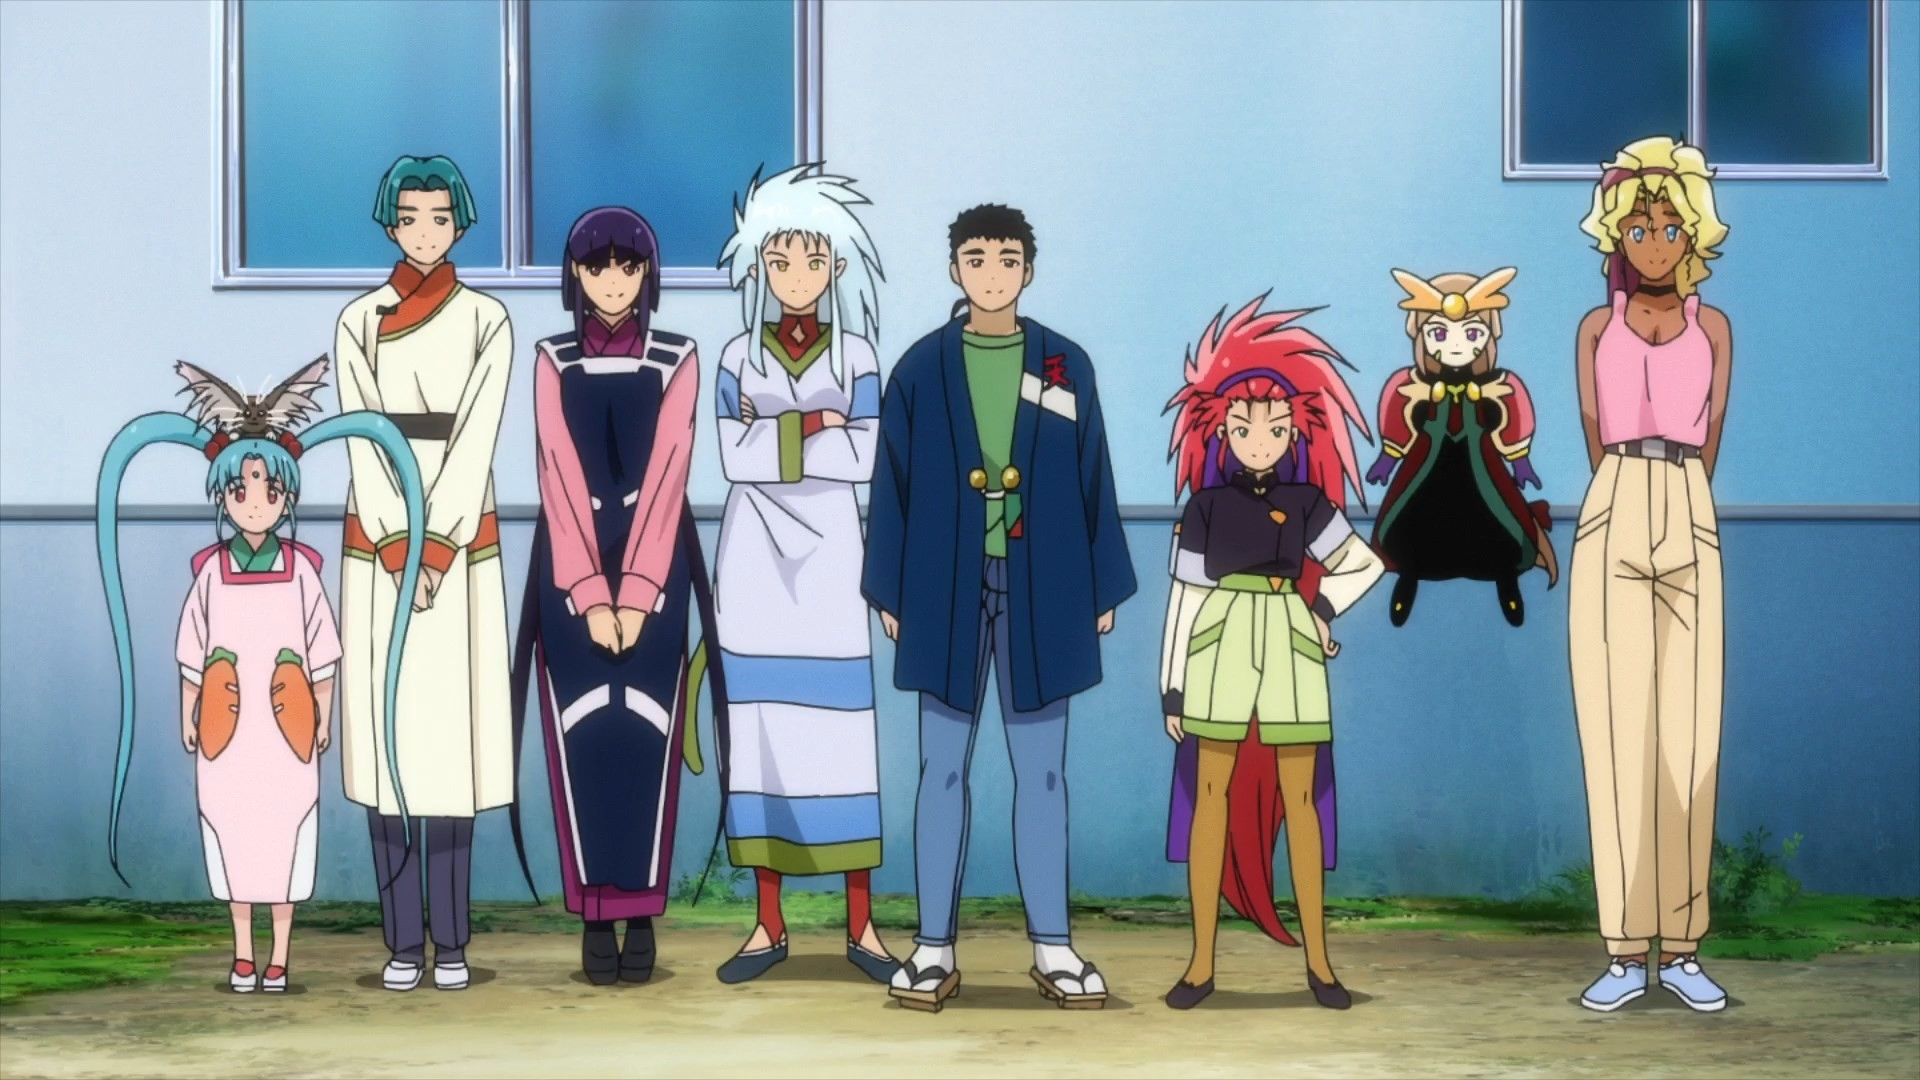 1920x1080 Section 2.3: TM!R OVA 4. Subsection 3: Tenchi Muyo!